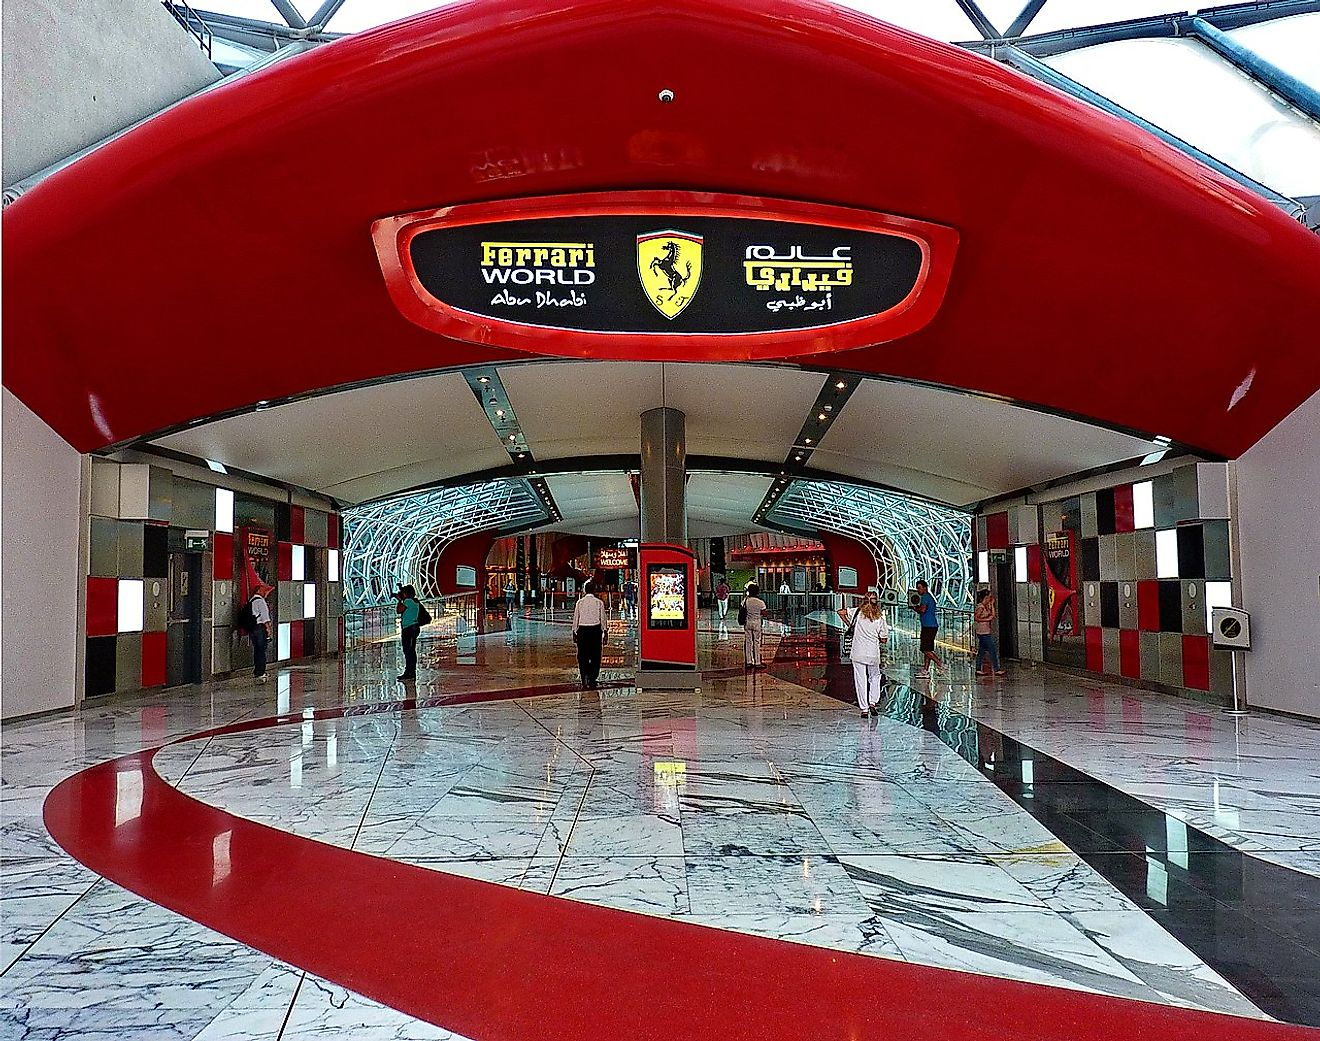 Entrance to Ferrari World, Abu Dhabi. Image credit: Patano/Wikimedia.org